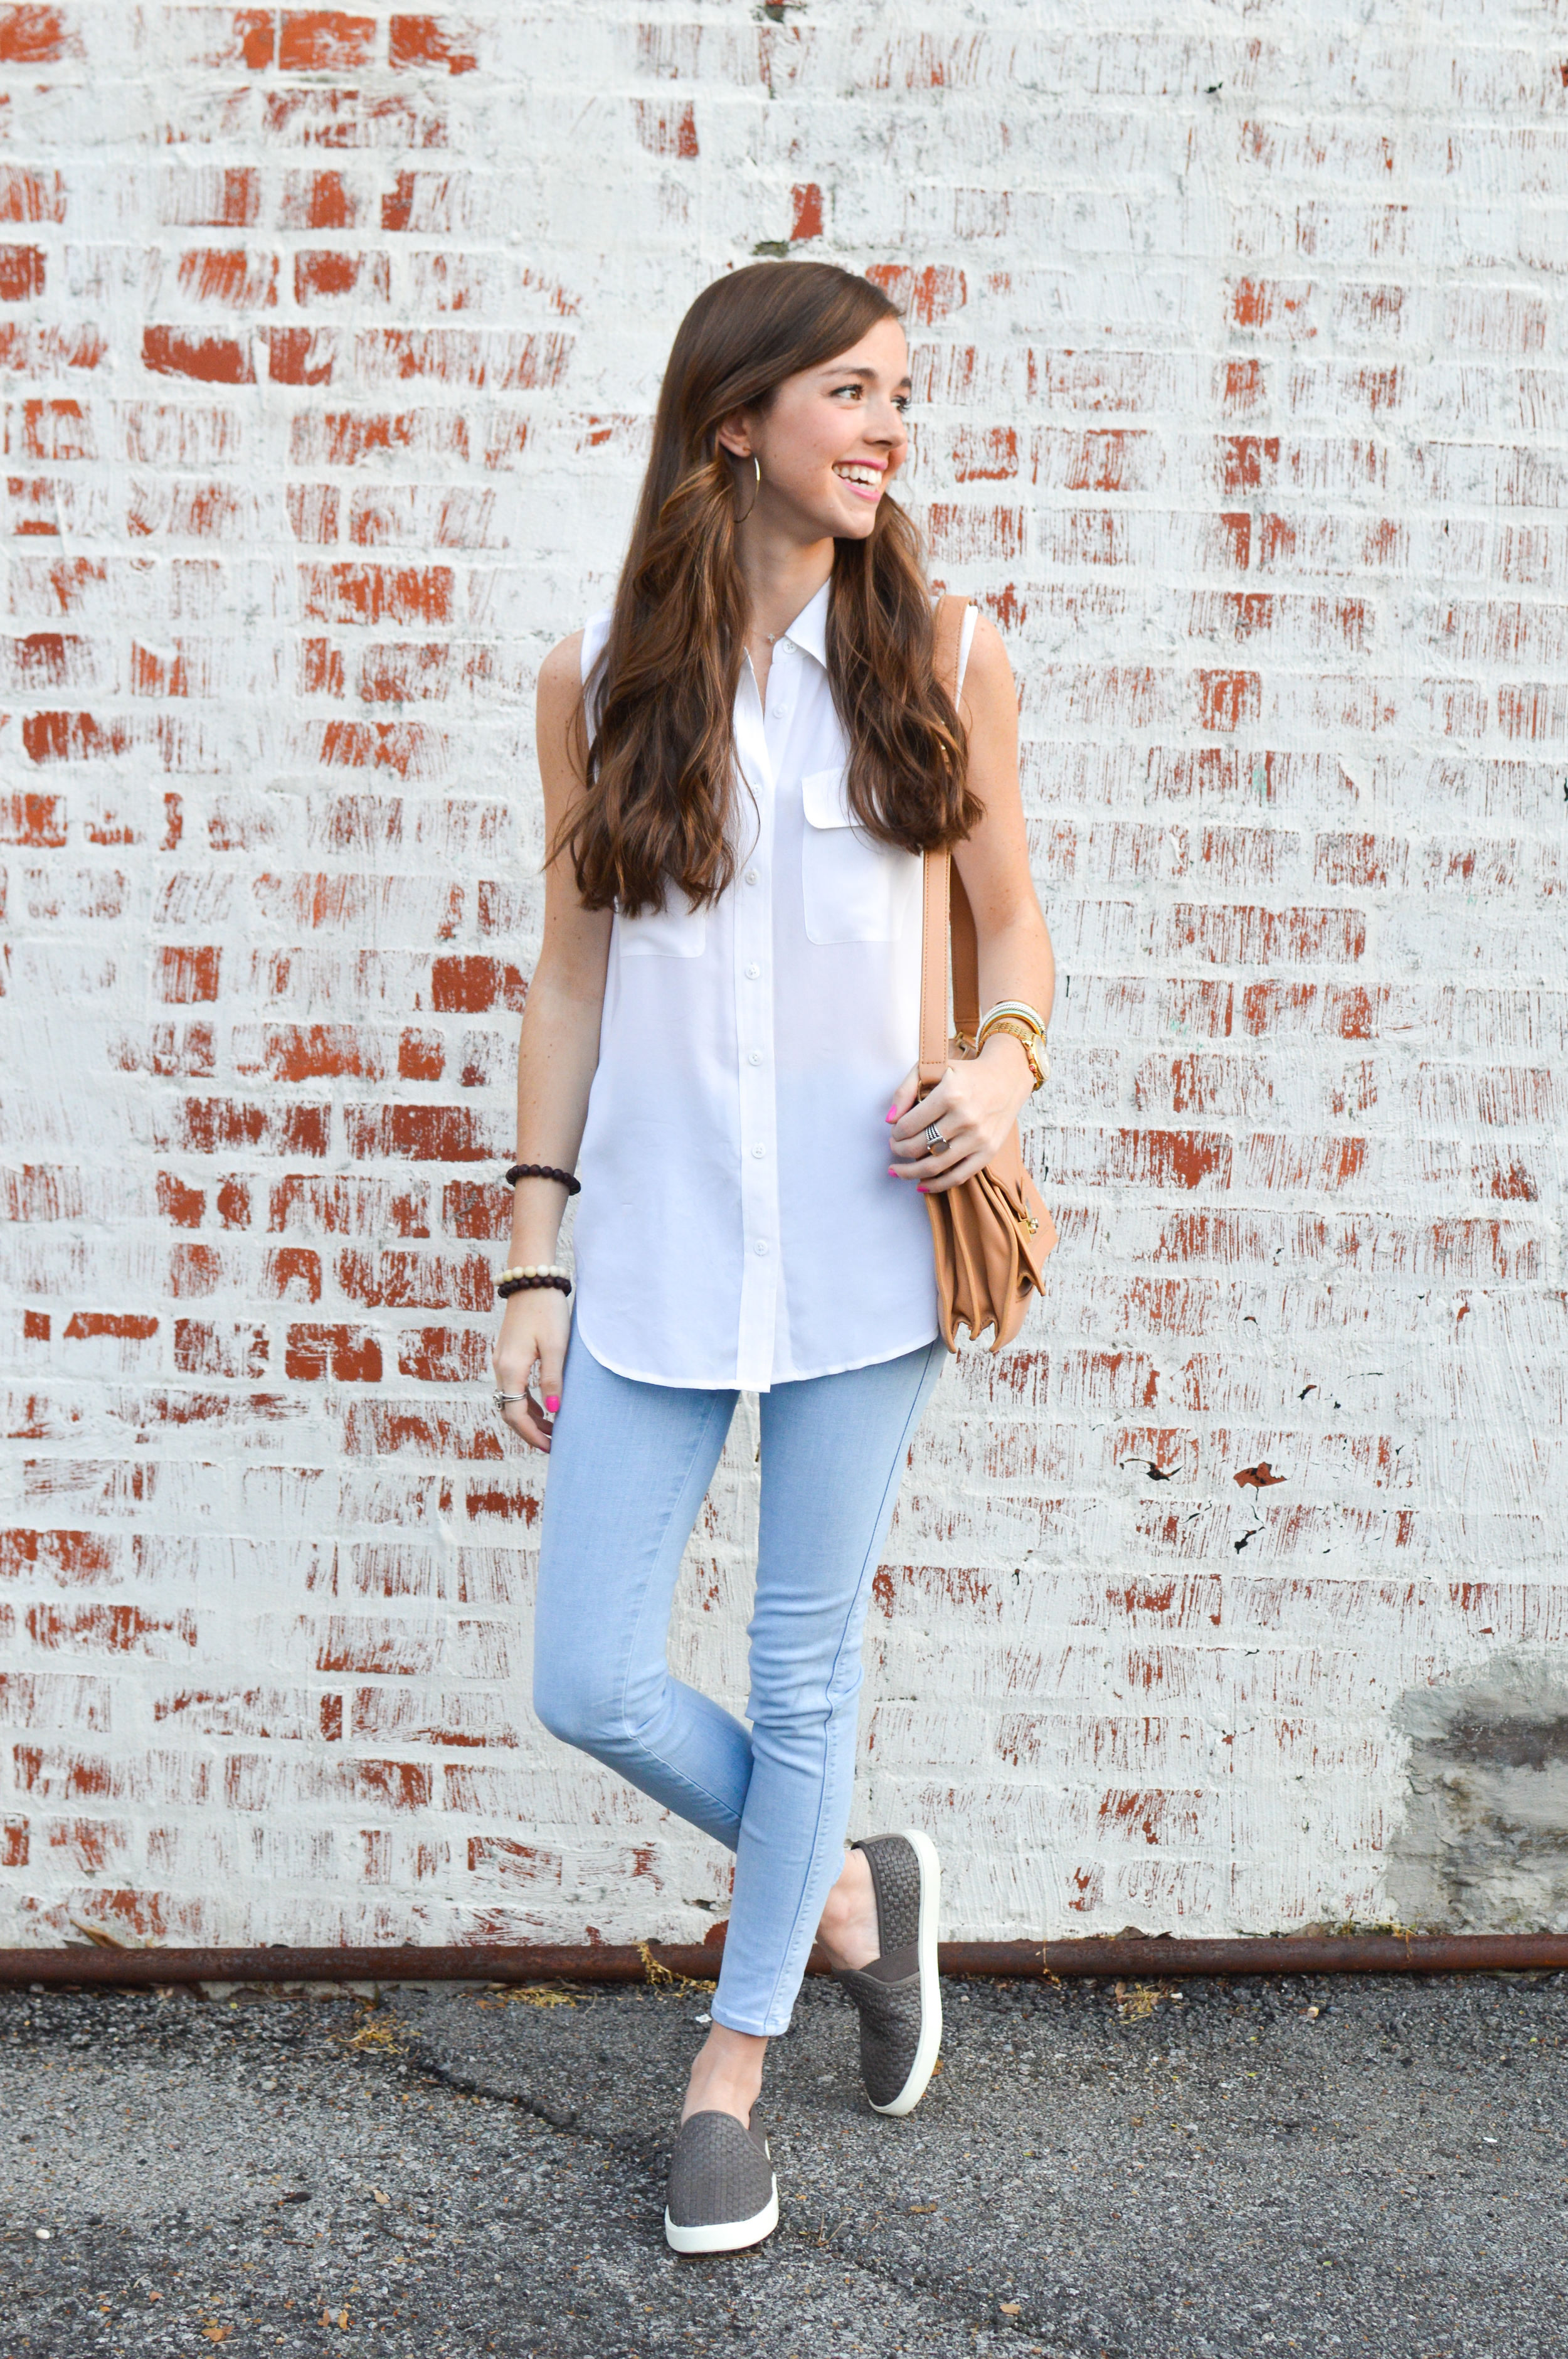 casual equipment outfit (7 of 15).jpg